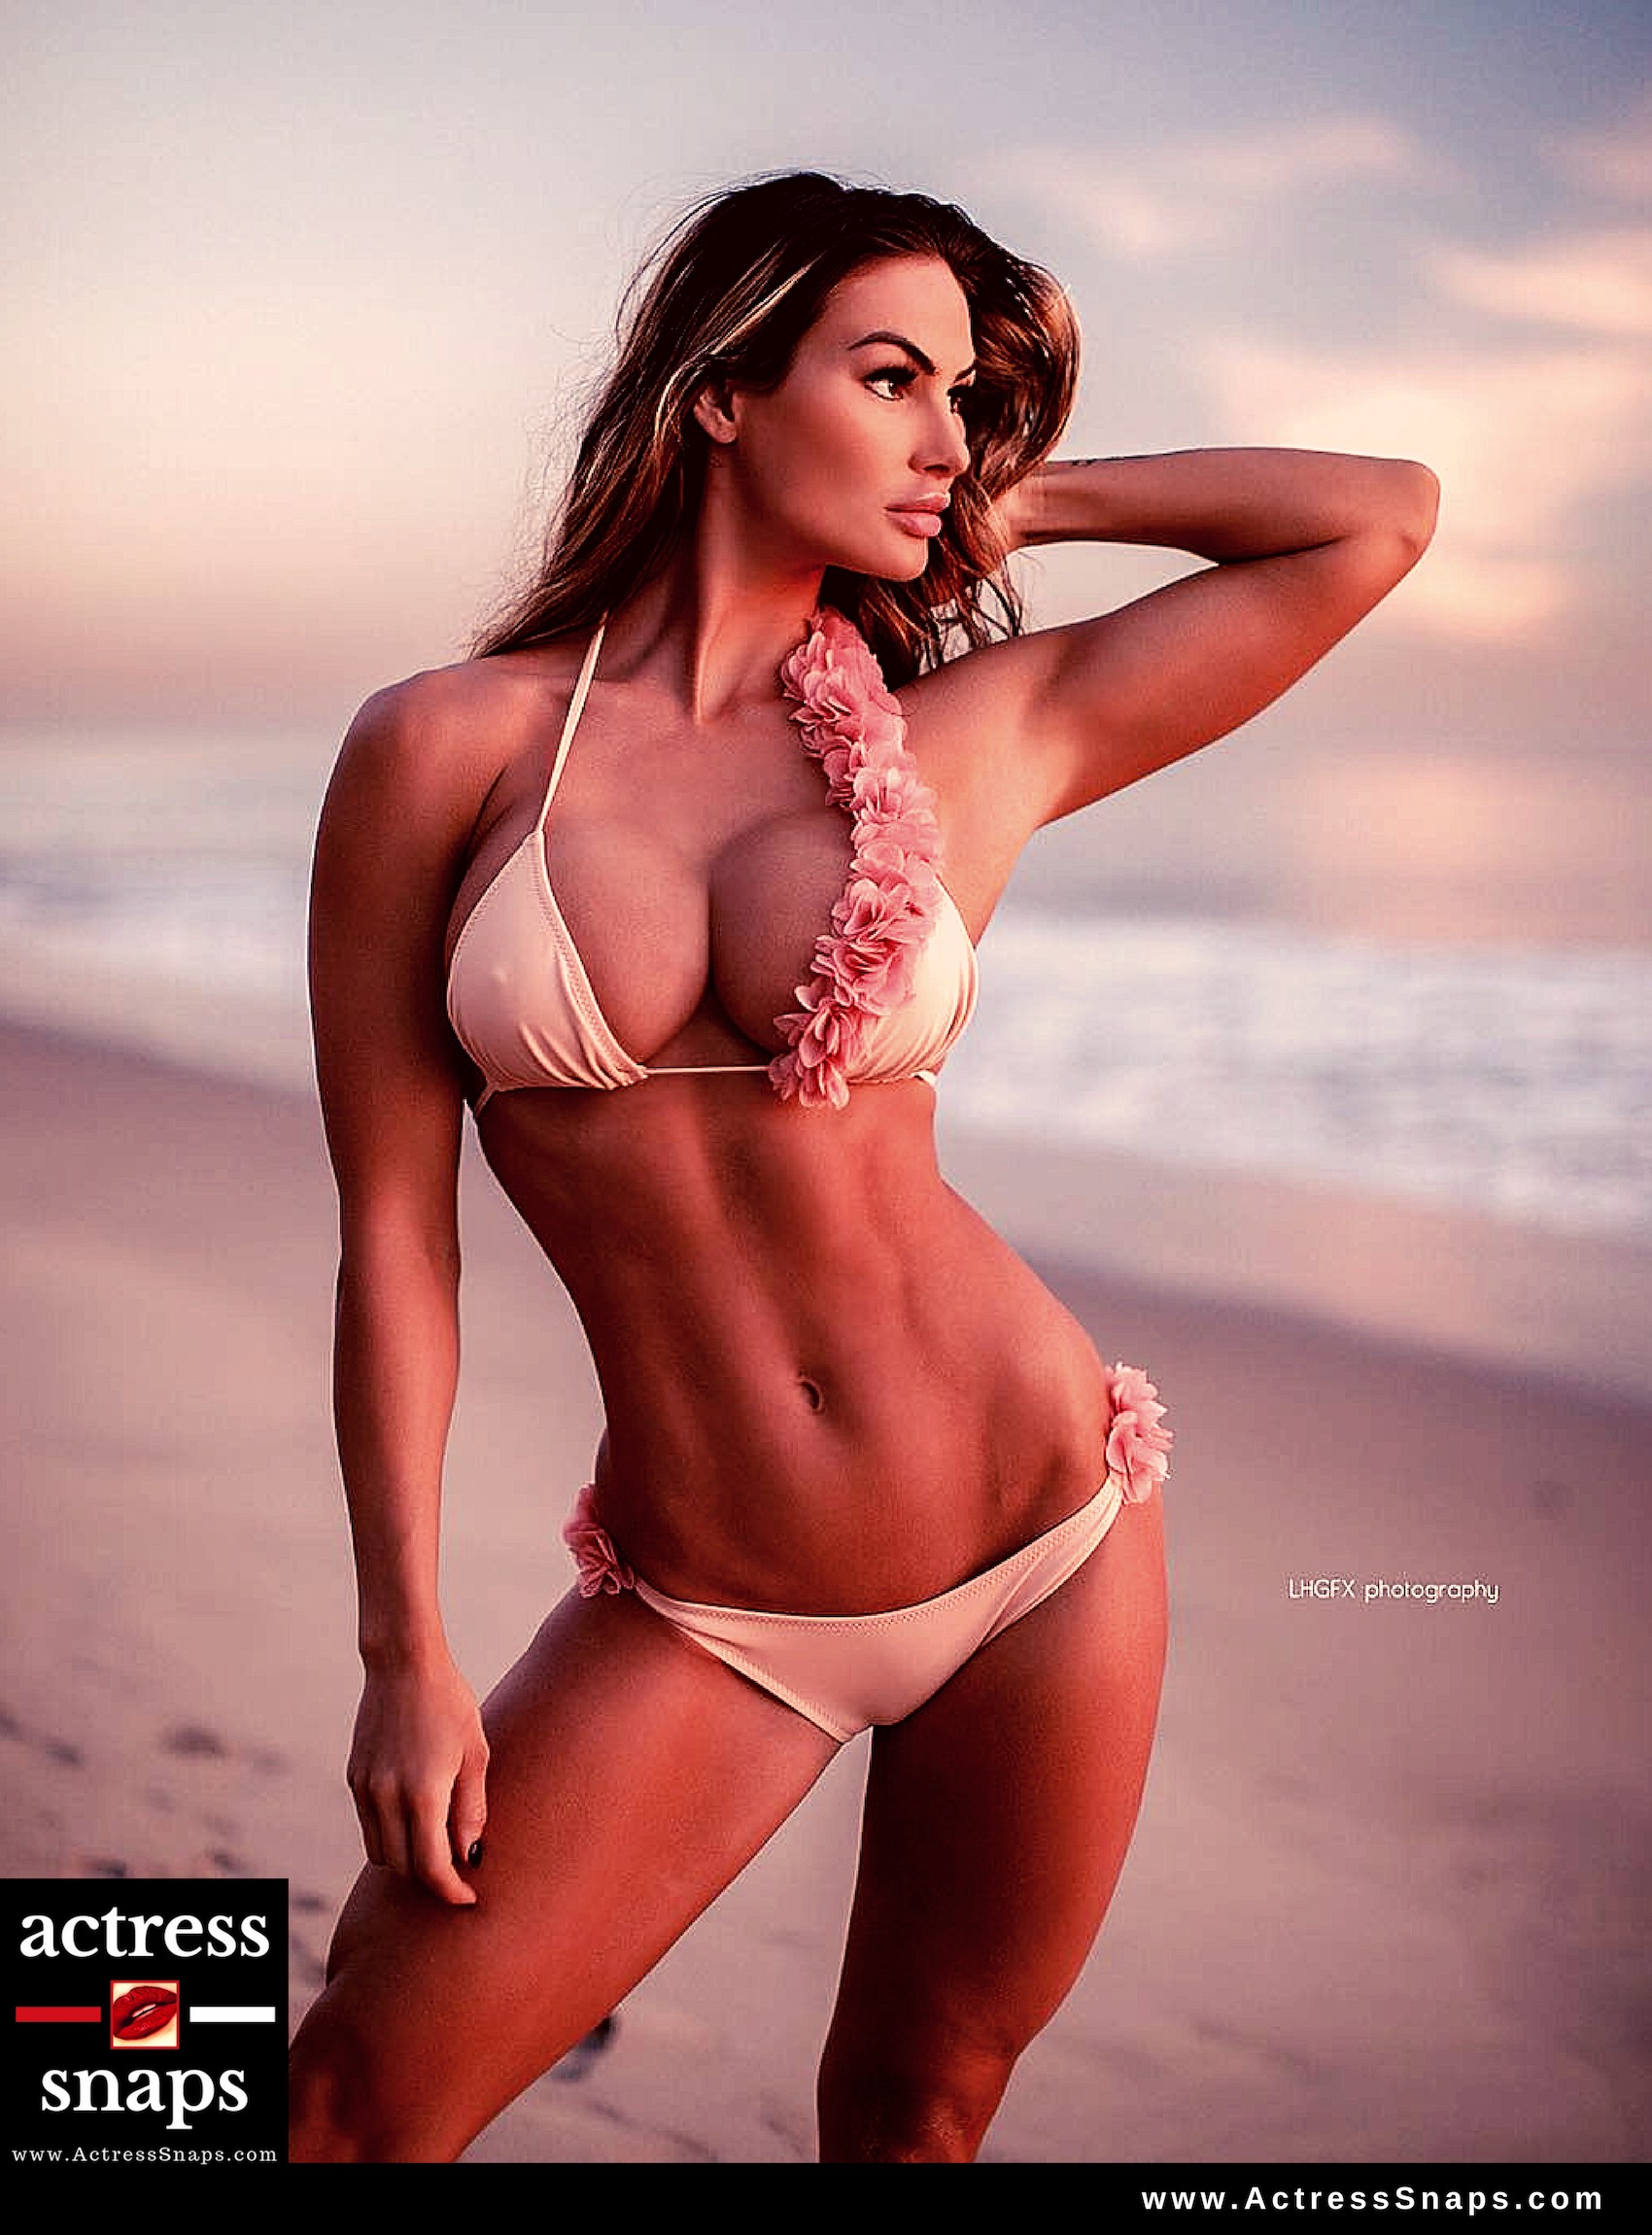 Katelyn Runck - Sexy Instagram Photos - Sexy Actress Pictures | Hot Actress Pictures - ActressSnaps.com